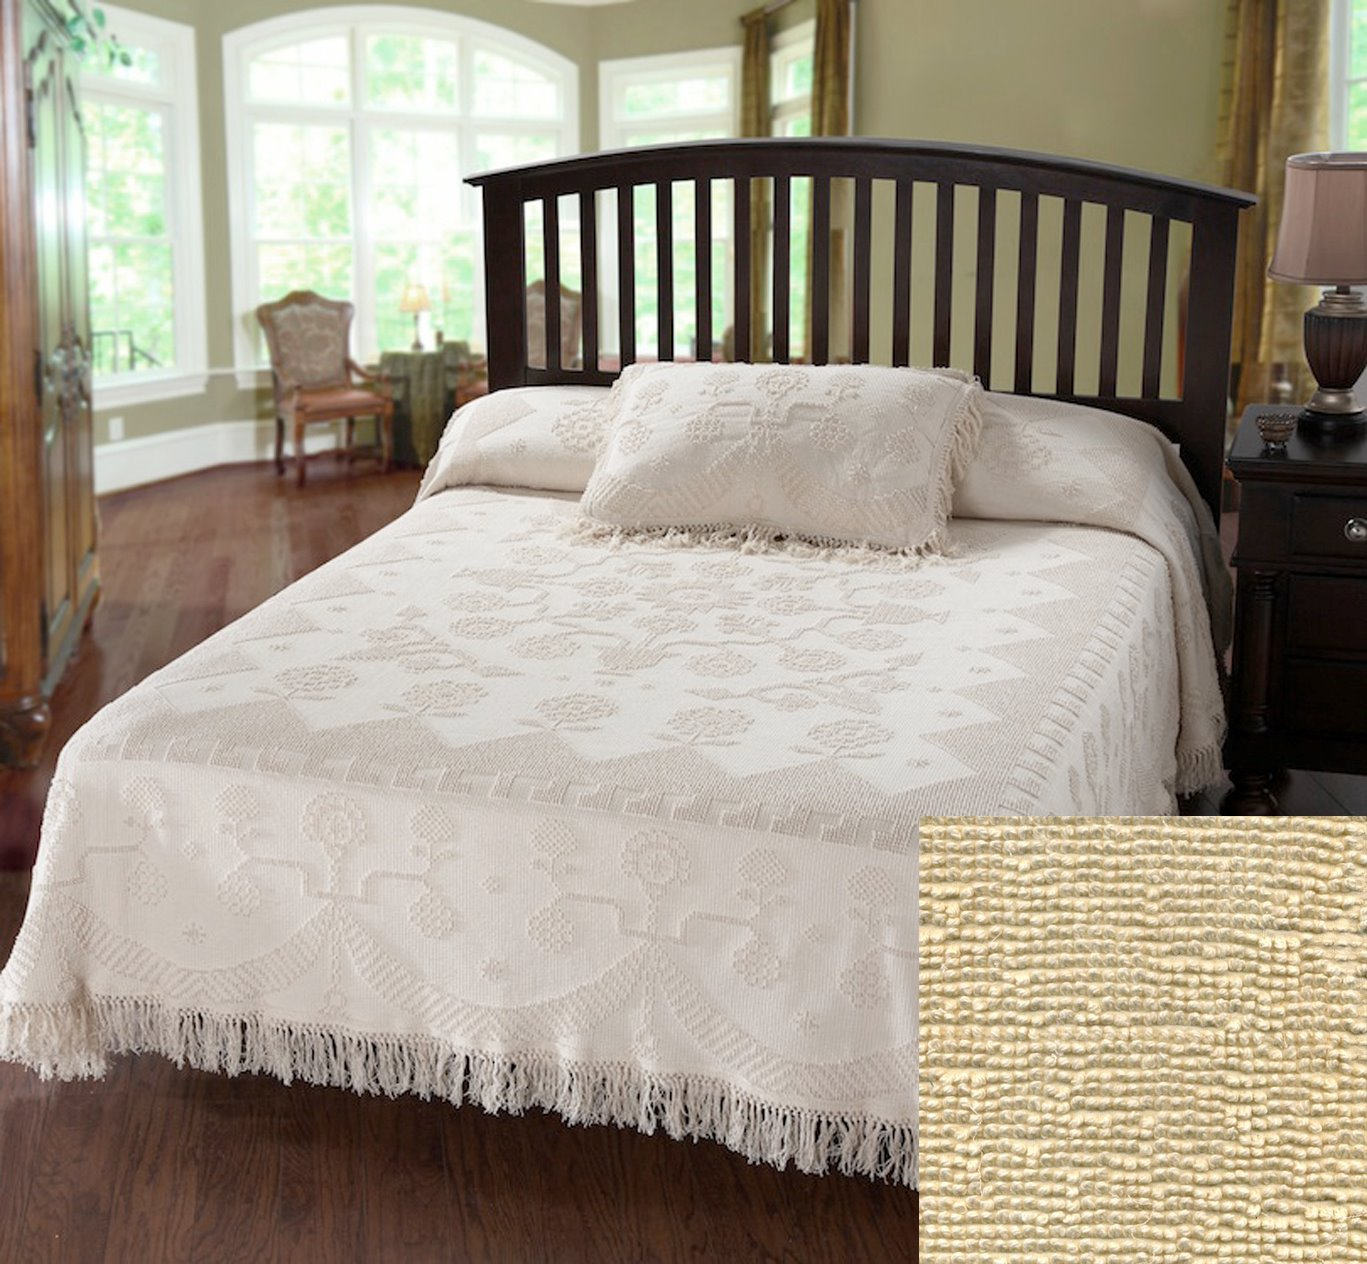 George Washington Bedspread Twin Antique